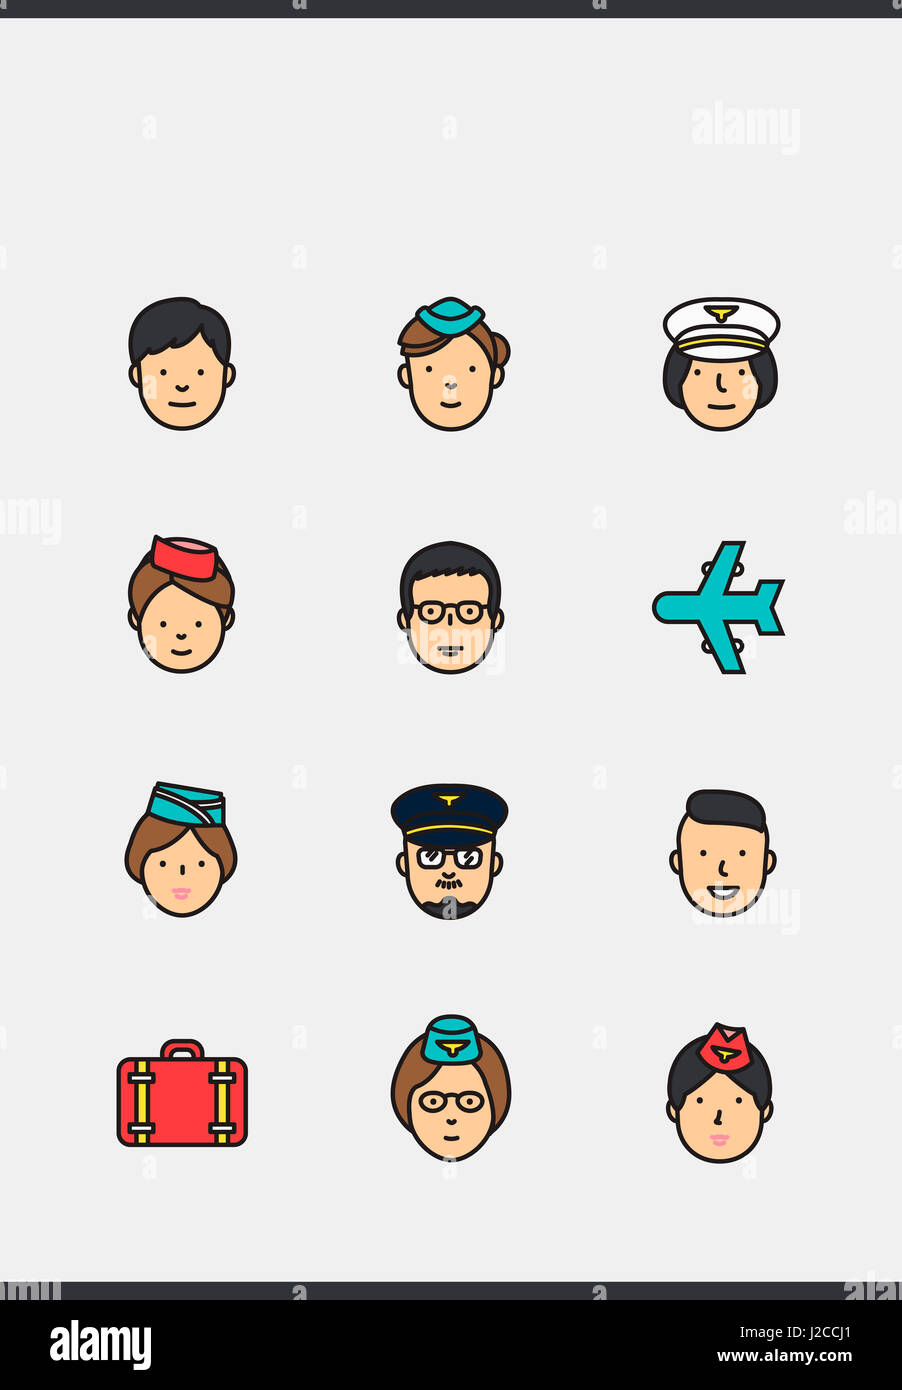 Icons of pilots and flight attendants - Stock Image